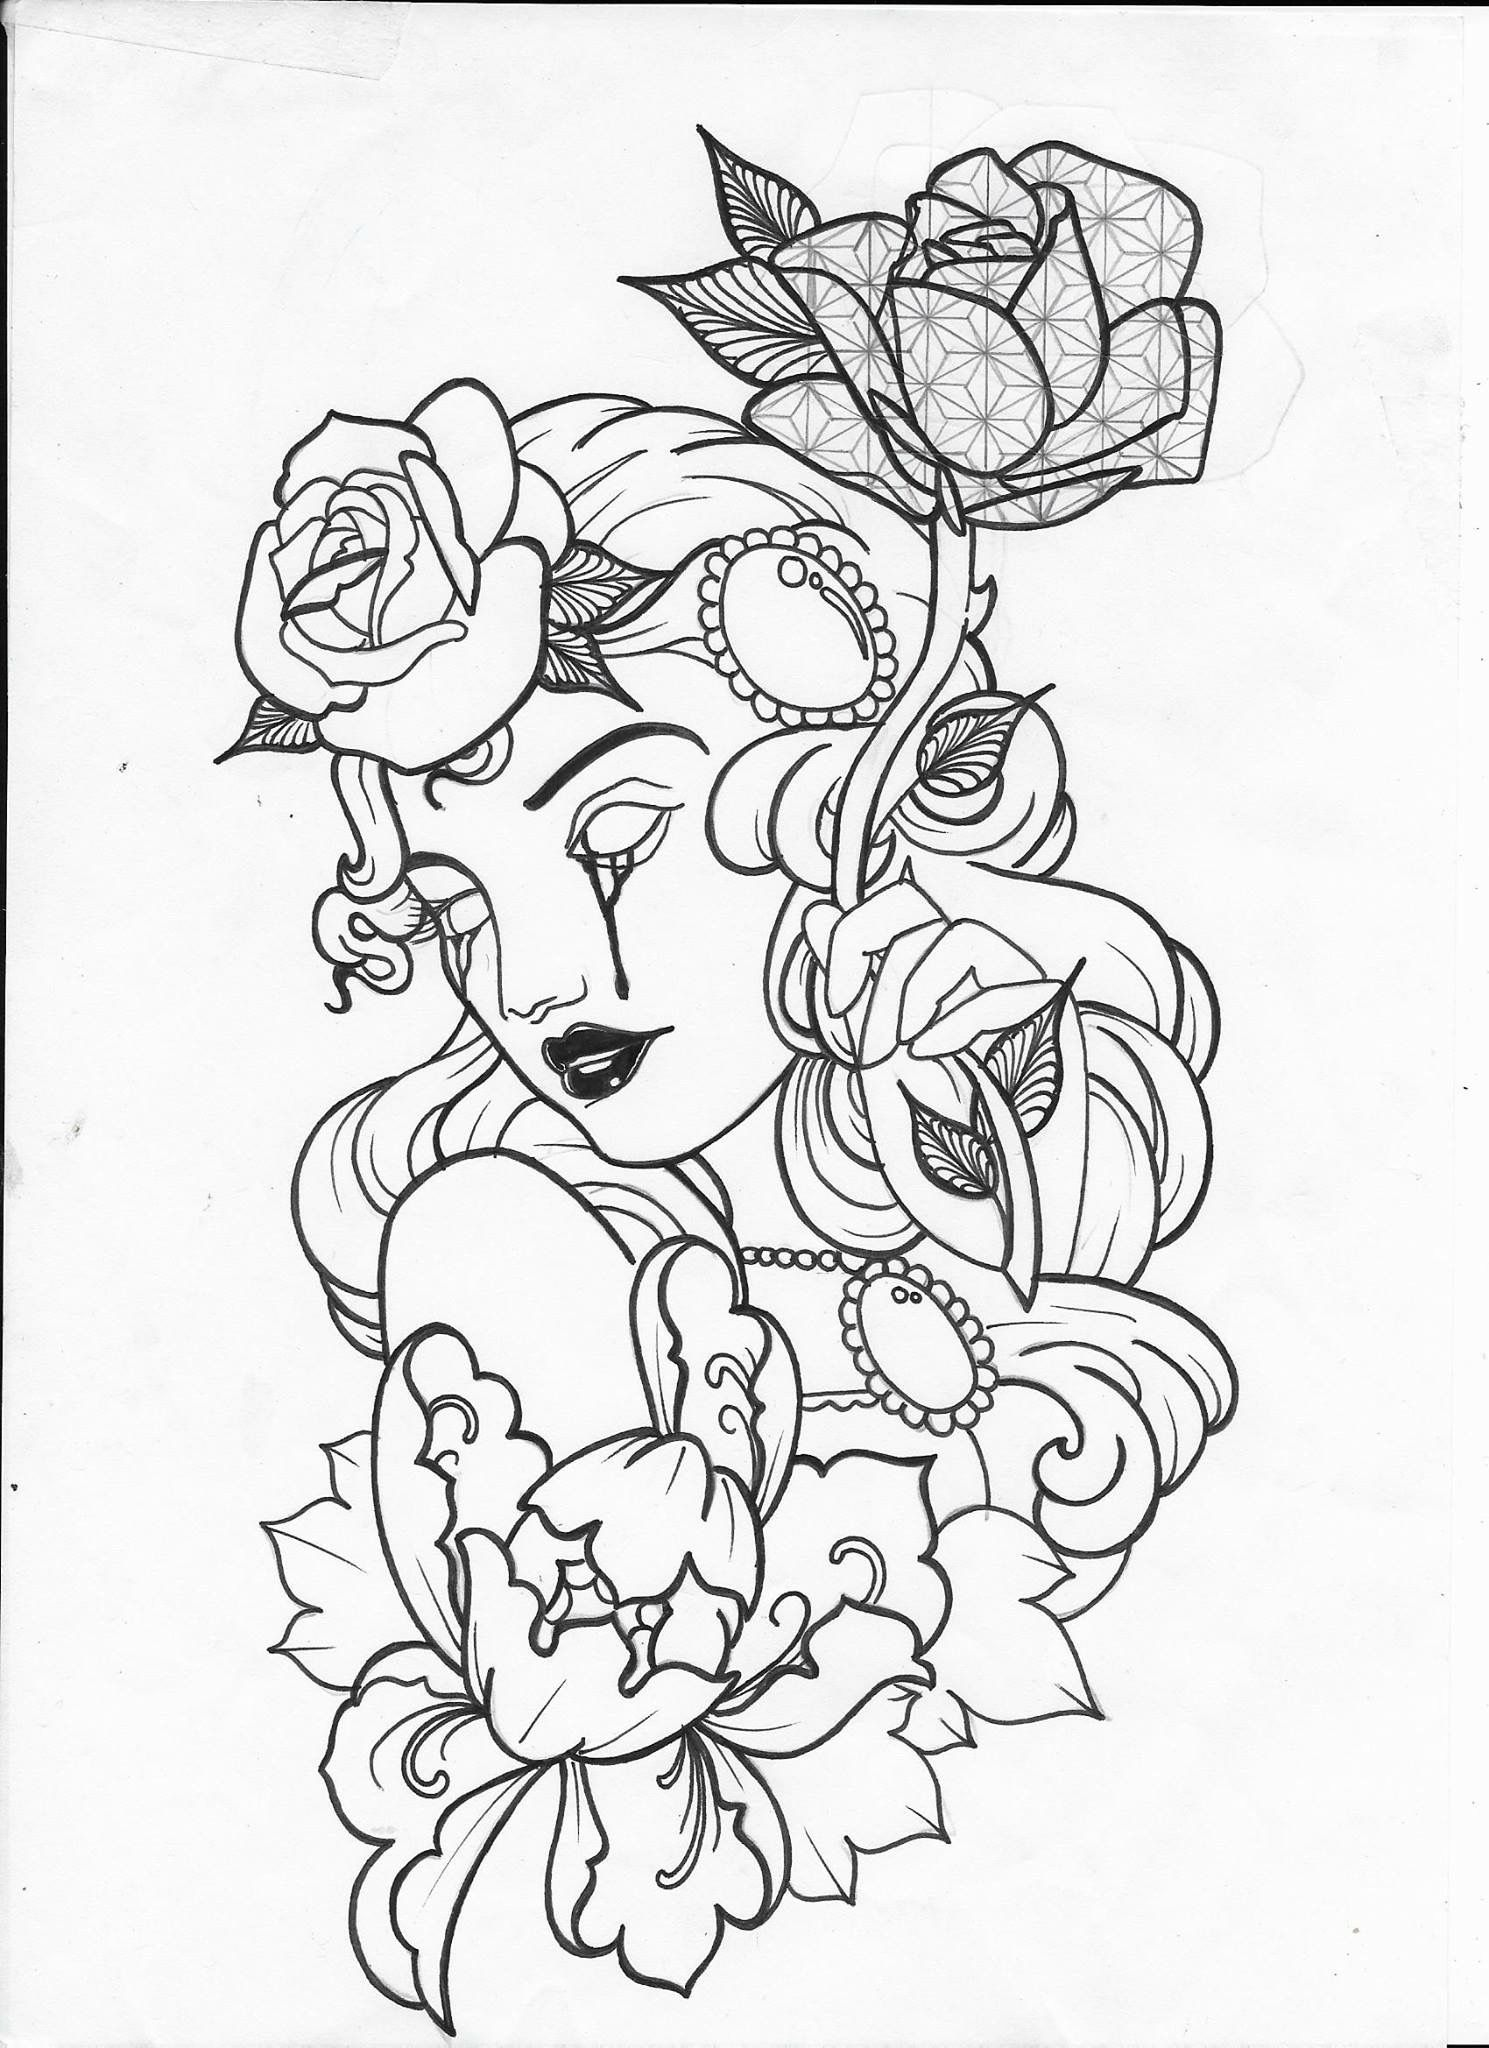 Tattoo Outline Designs : tattoo, outline, designs, Rostos, Tattoo, Stencil, Outline,, Sketch, Design,, Stencils